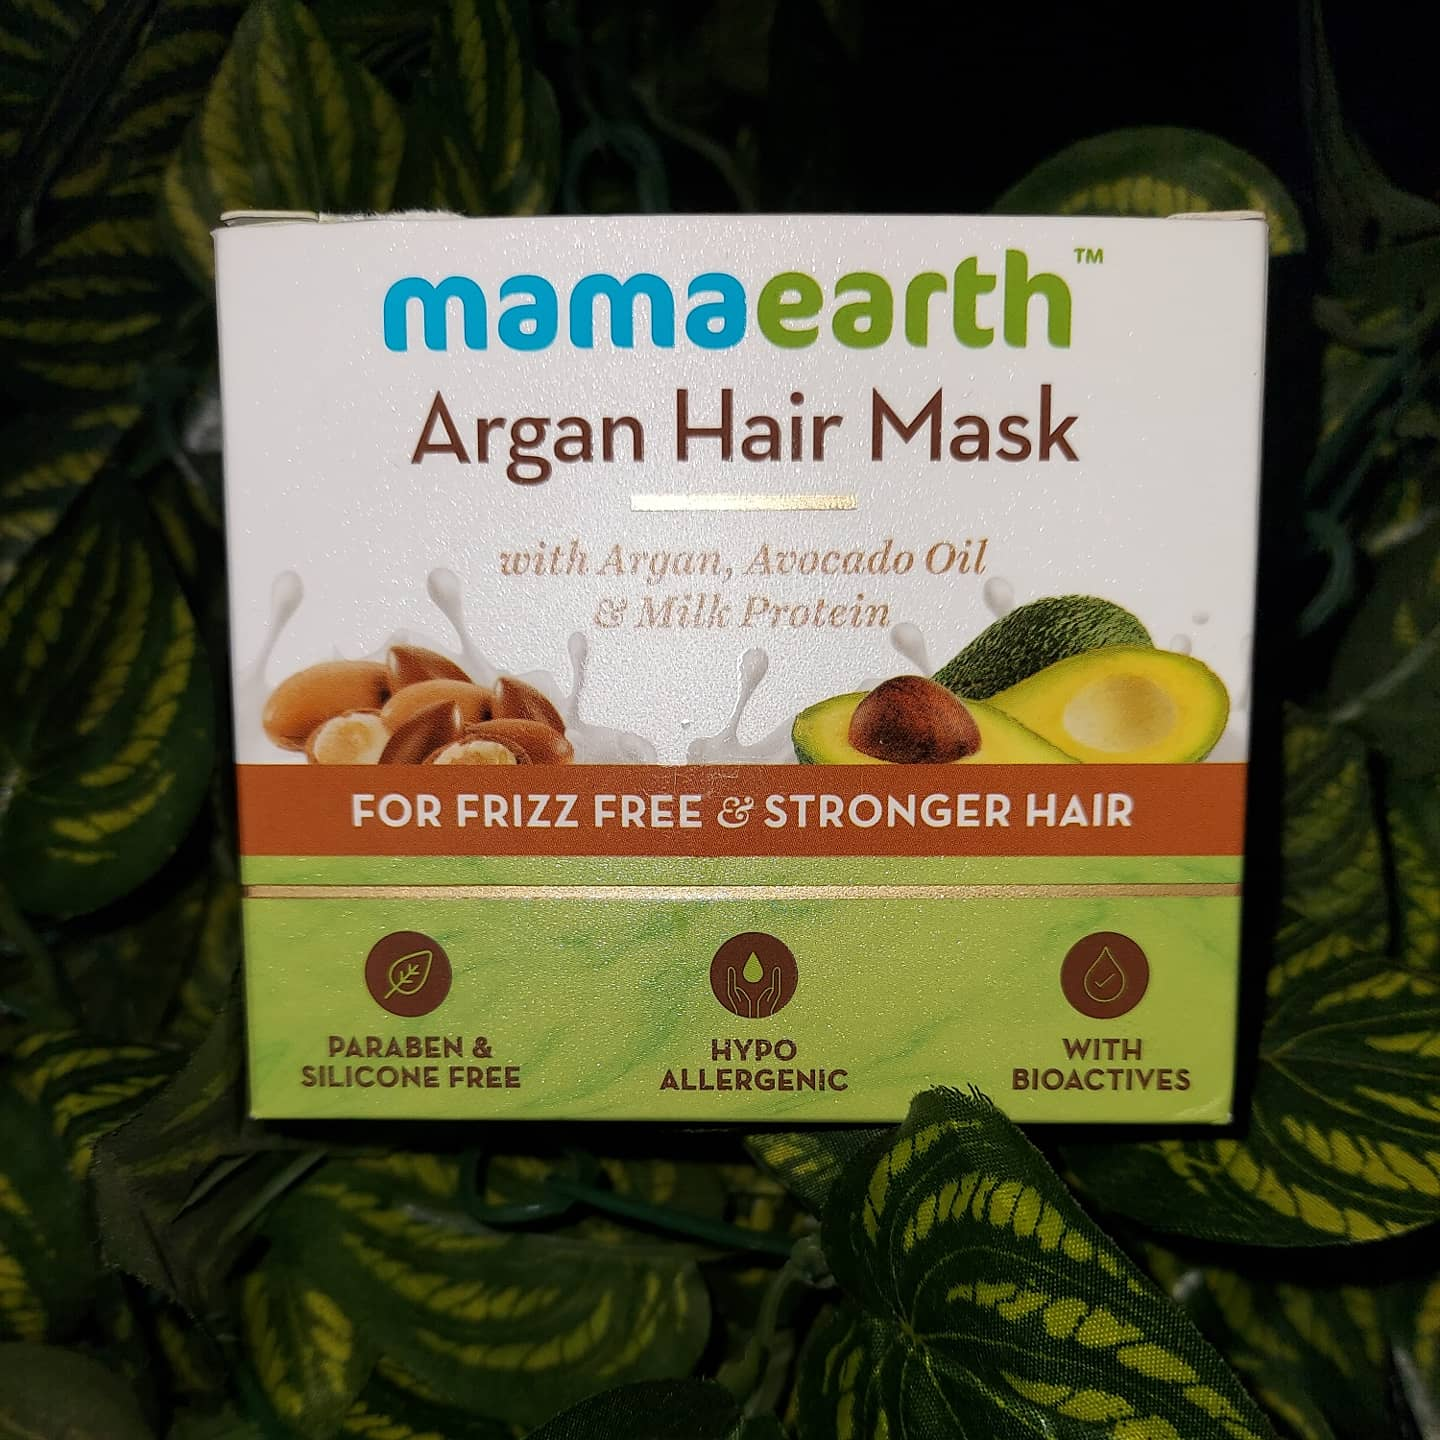 Mamaearth Argan Hair Mask-Extremely helpful for frizzy hair-By alittleflaunt-1